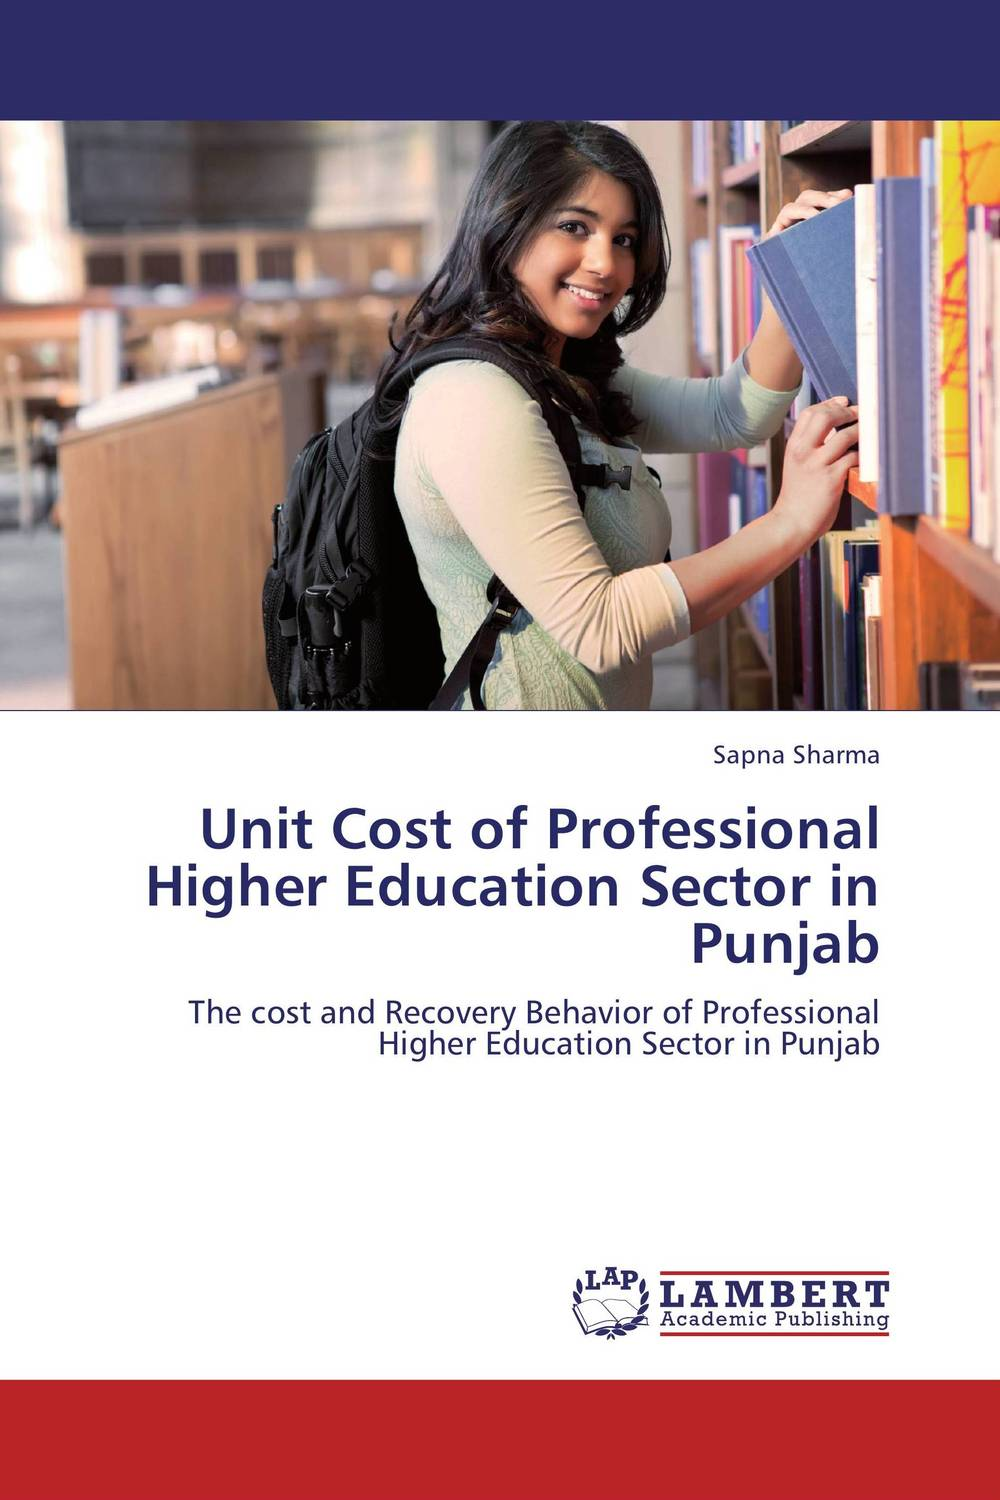 Unit Cost of Professional Higher Education Sector in Punjab found in brooklyn